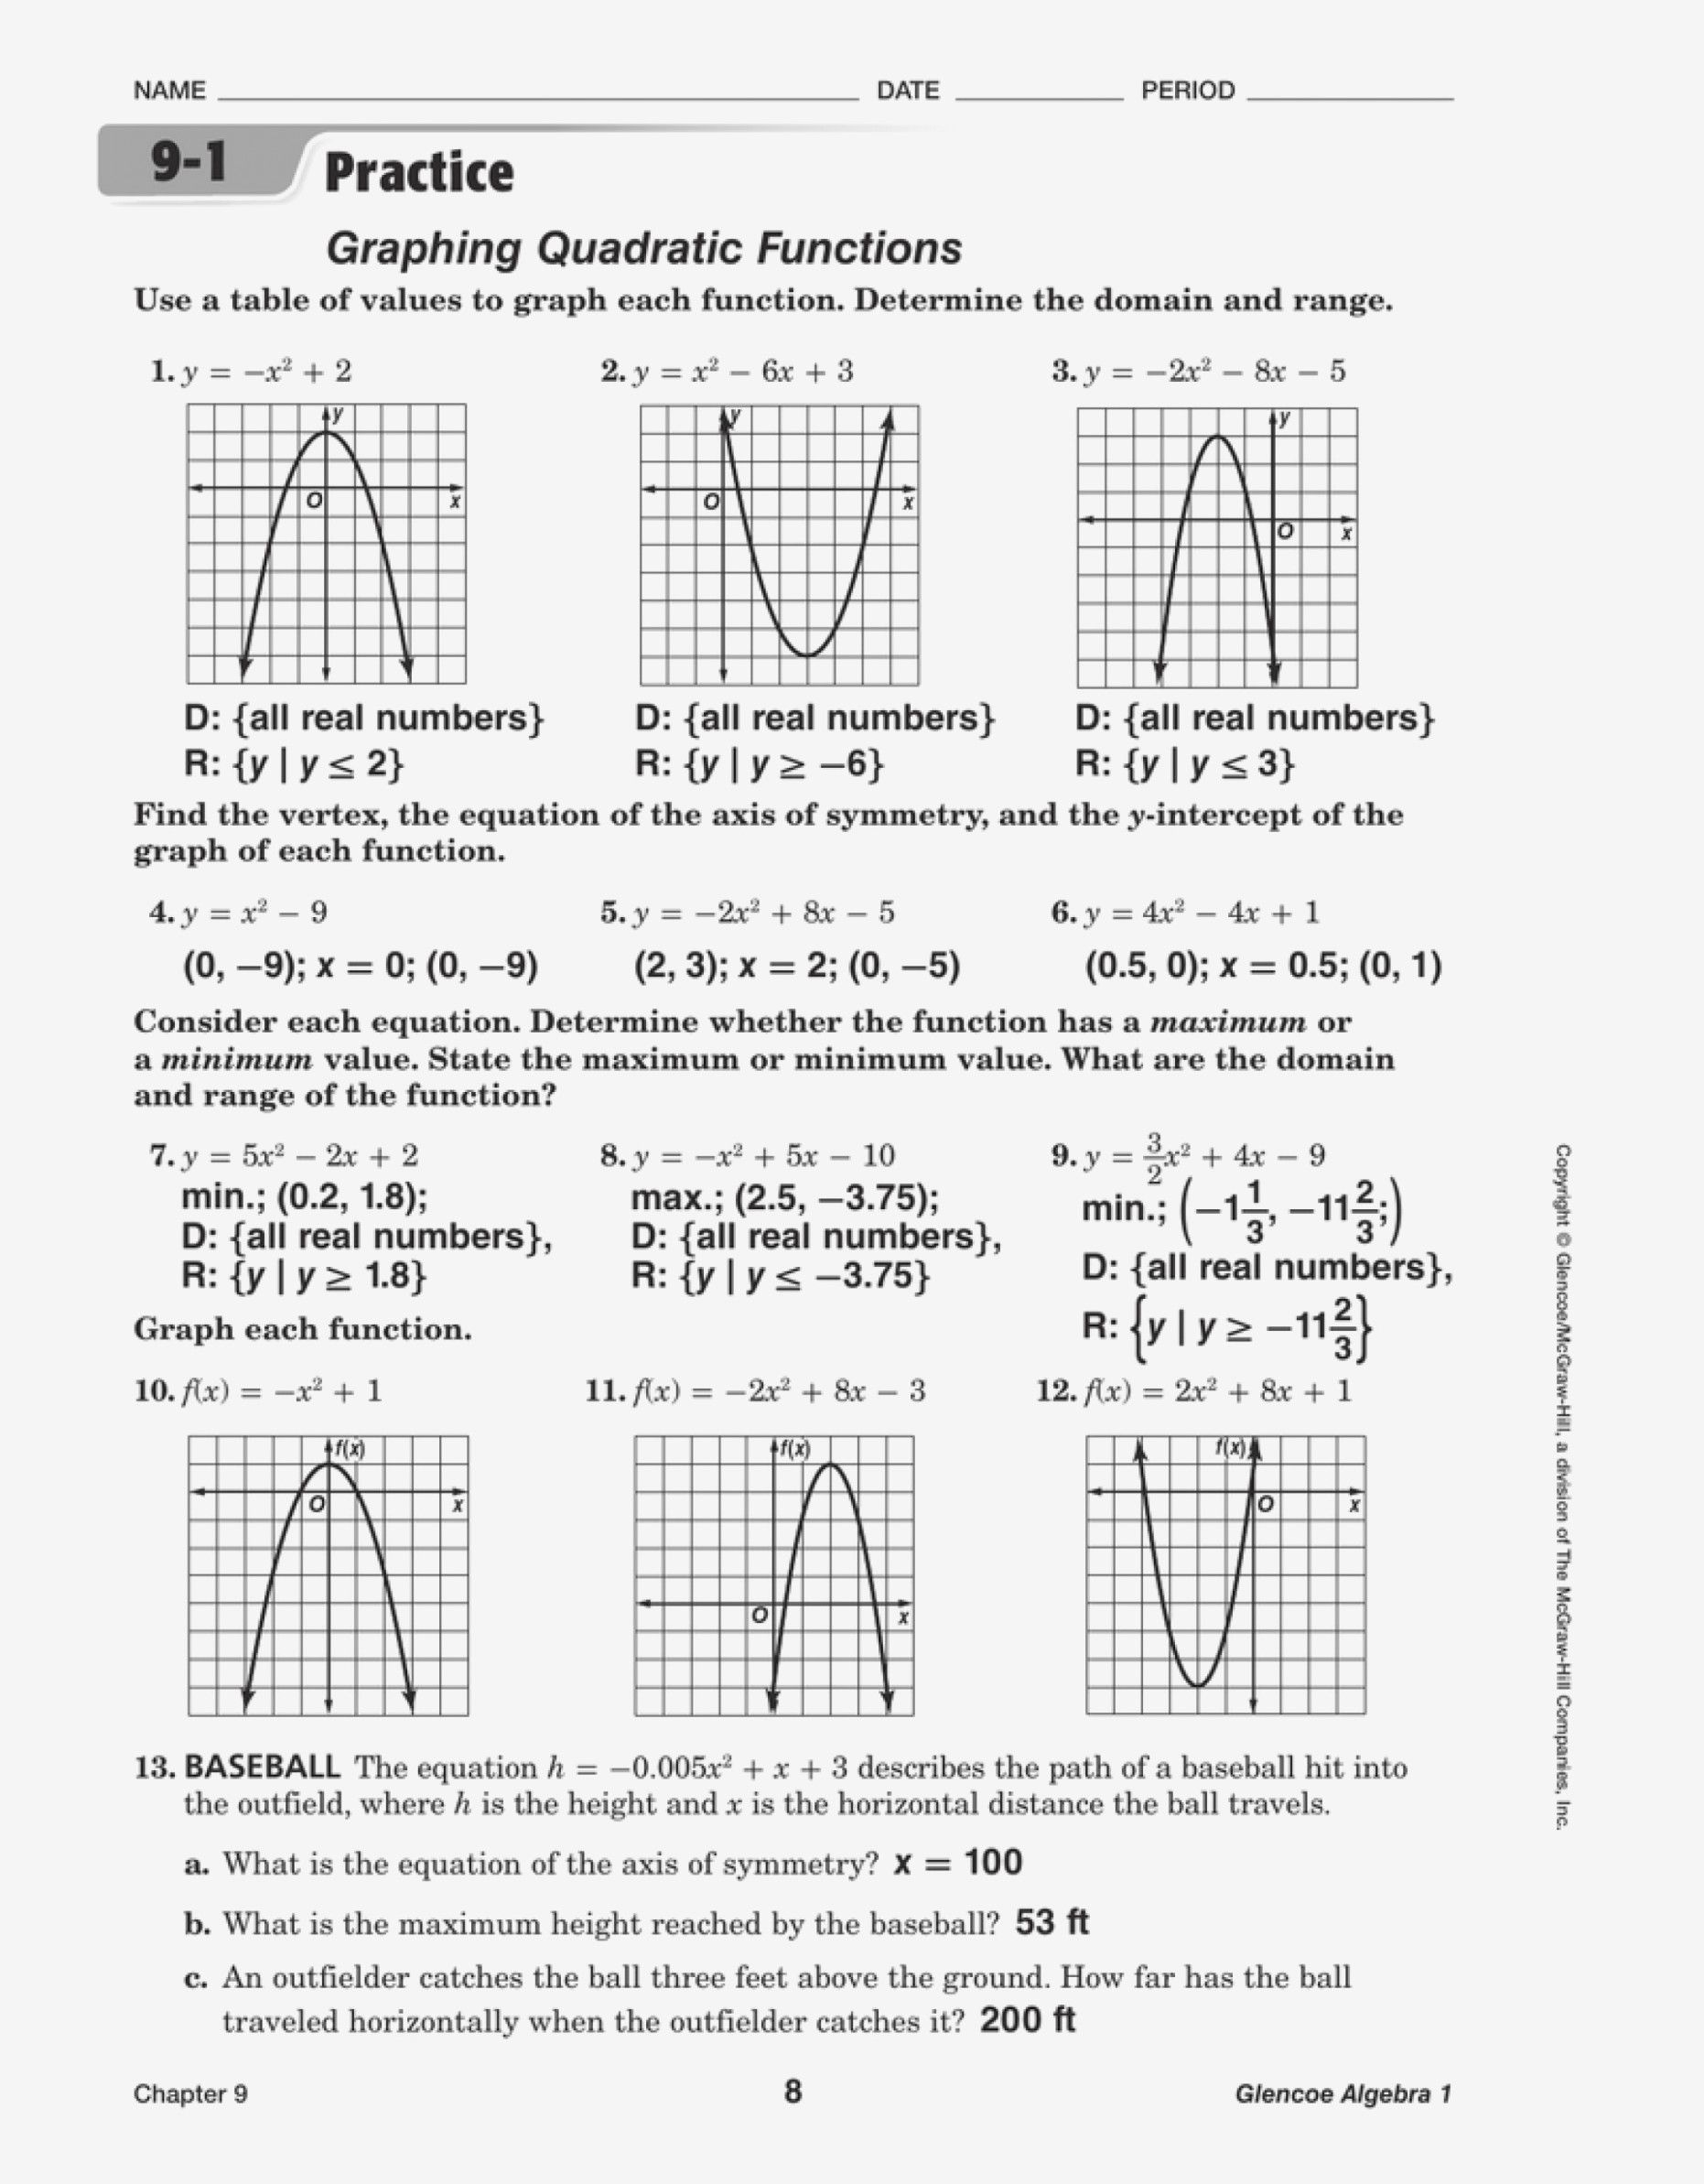 4 Graphing Quadratic Functions Worksheet Answers Algebra 1 In 2020